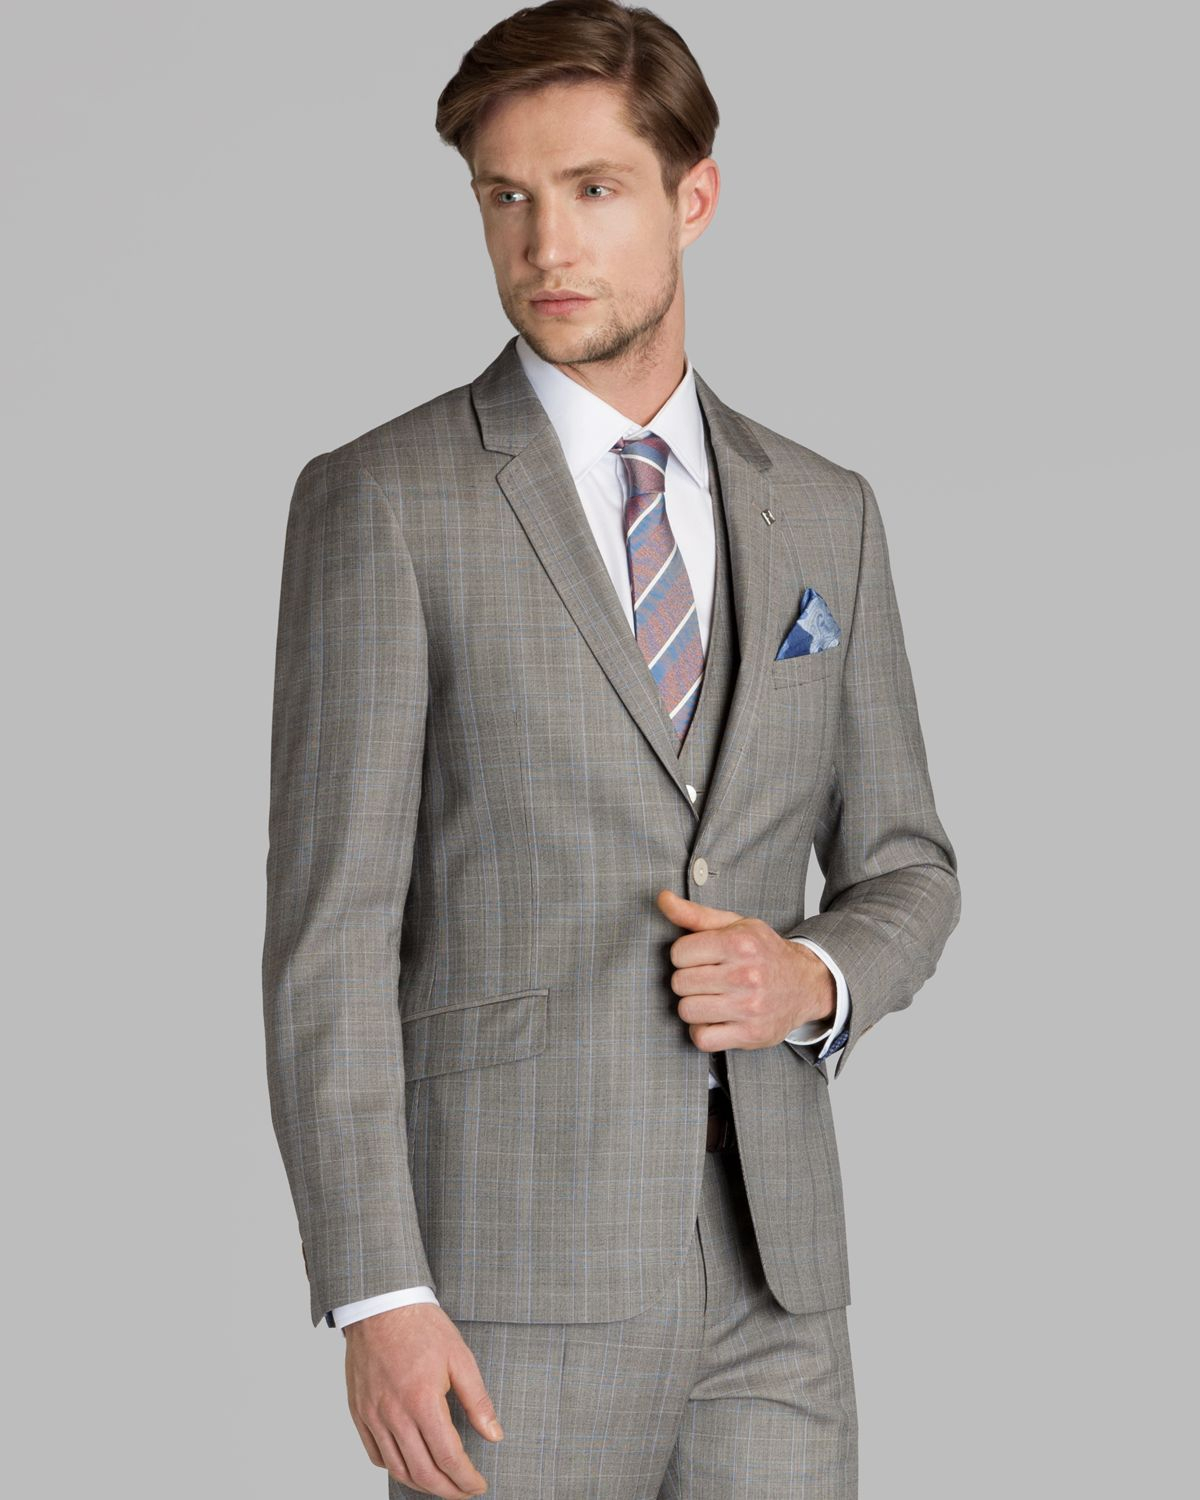 Gray Shirts For Men